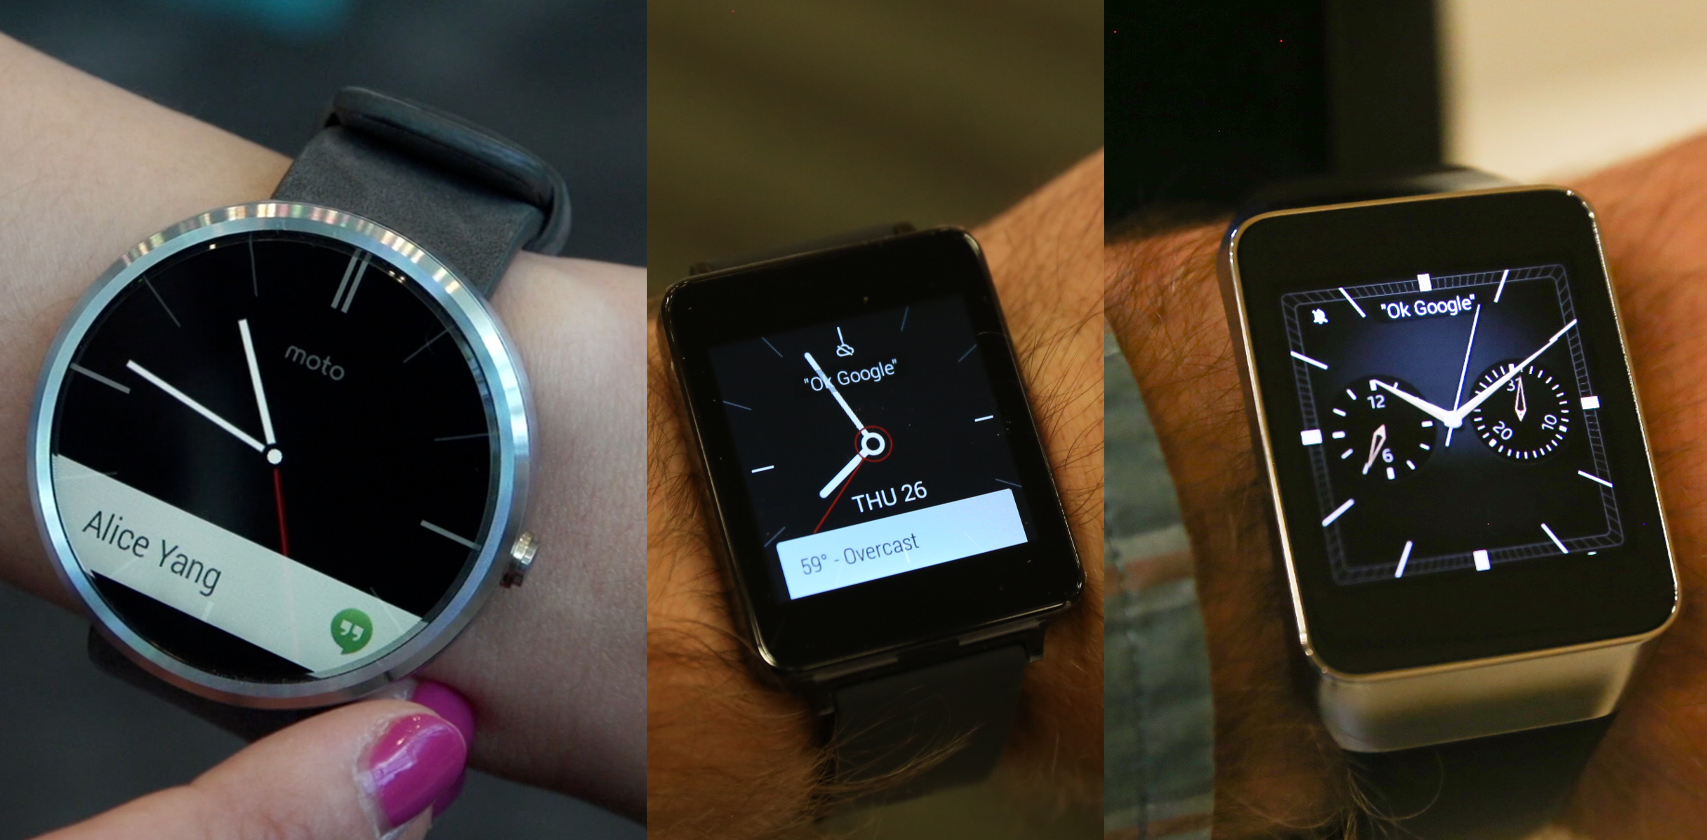 Android Wear android wear wars: the moto 360, lg g watch and samsung gear